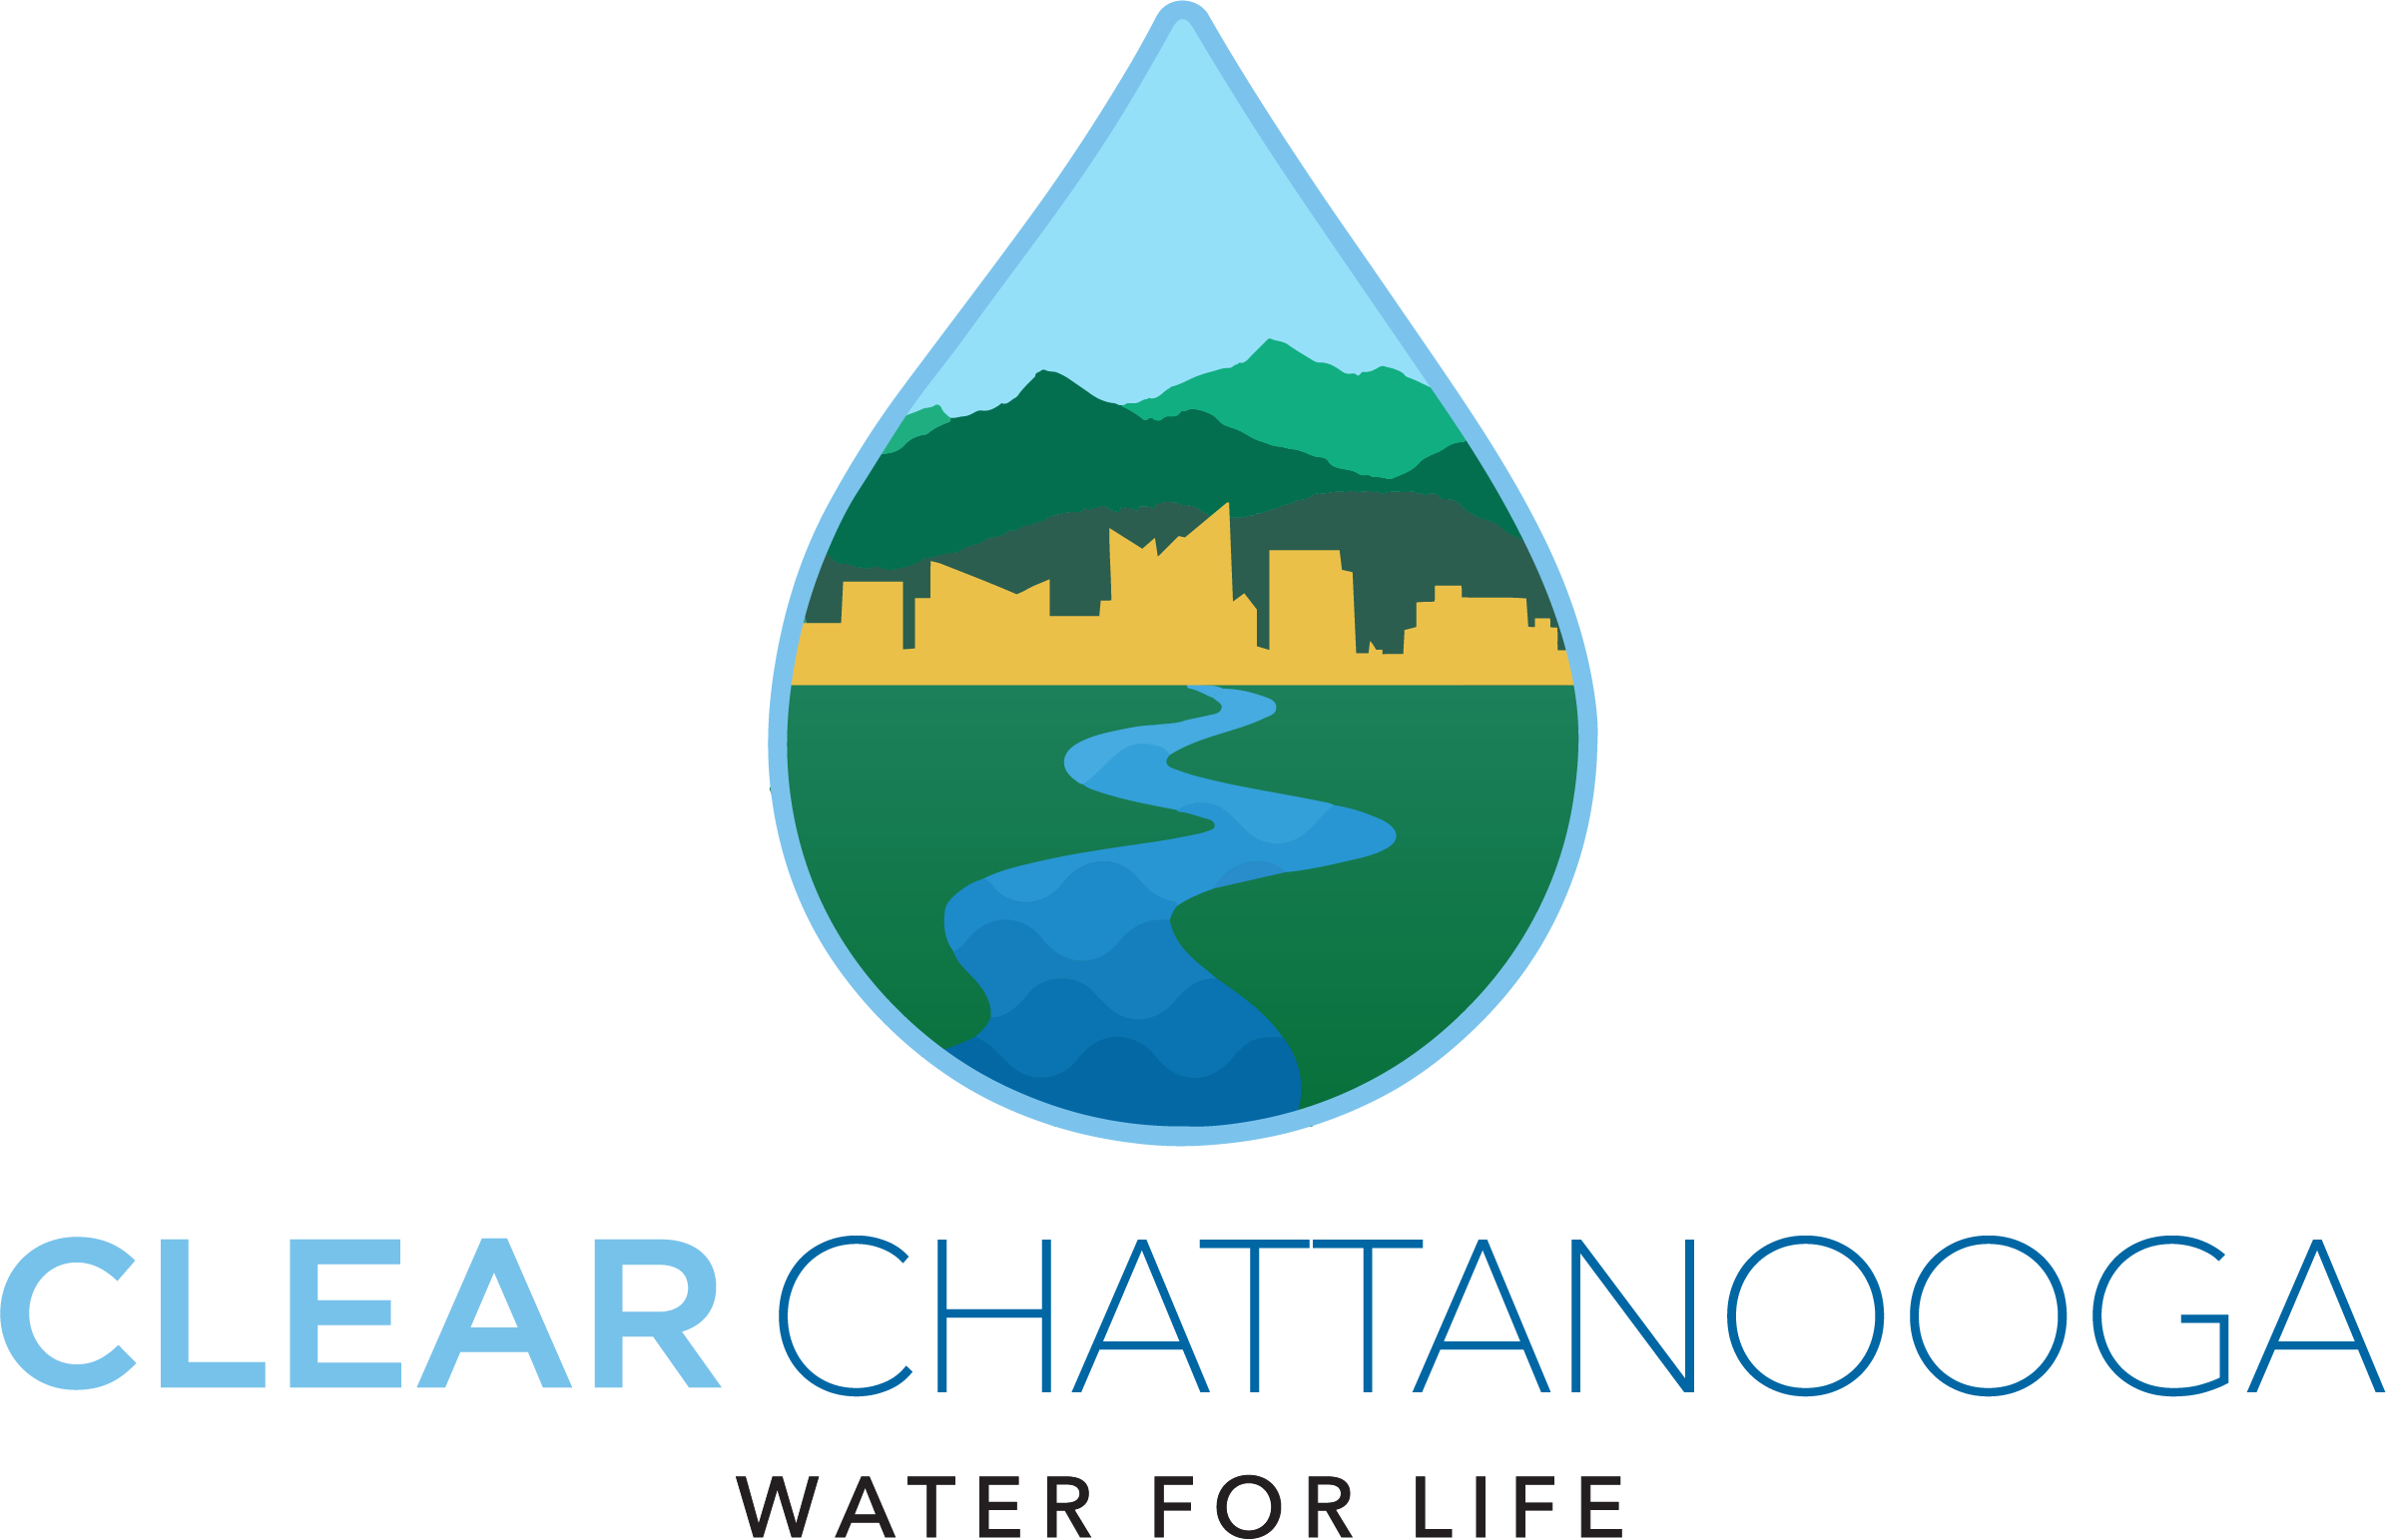 Clear Chattanooga Final Logo